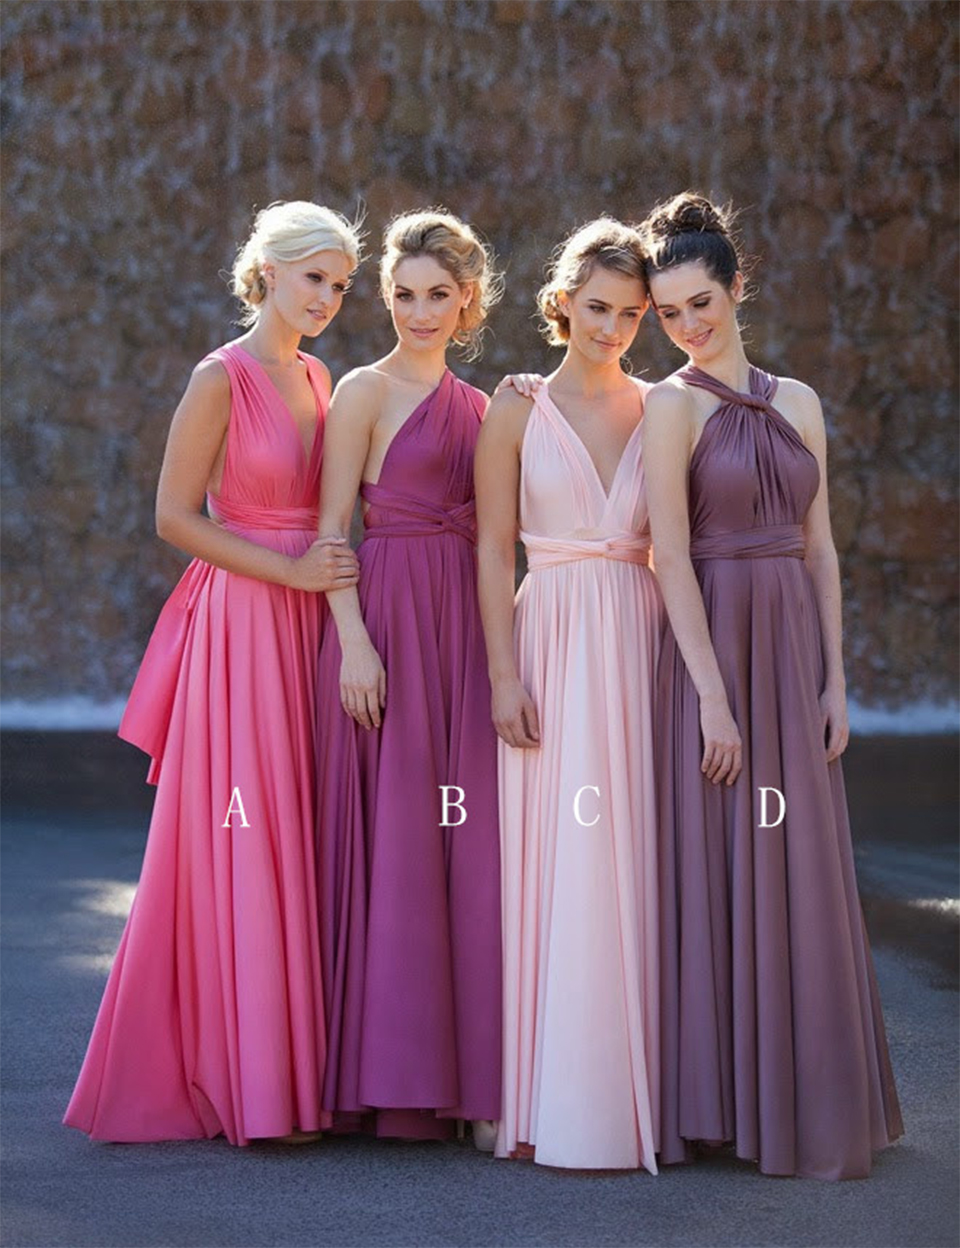 Online get cheap halter bridesmaid dresses under 100 aliexpress cheap long pink bridesmaid dresses under 100 pleat satin bridesmaid dresses one shoulder bridesmaid dress for ombrellifo Gallery